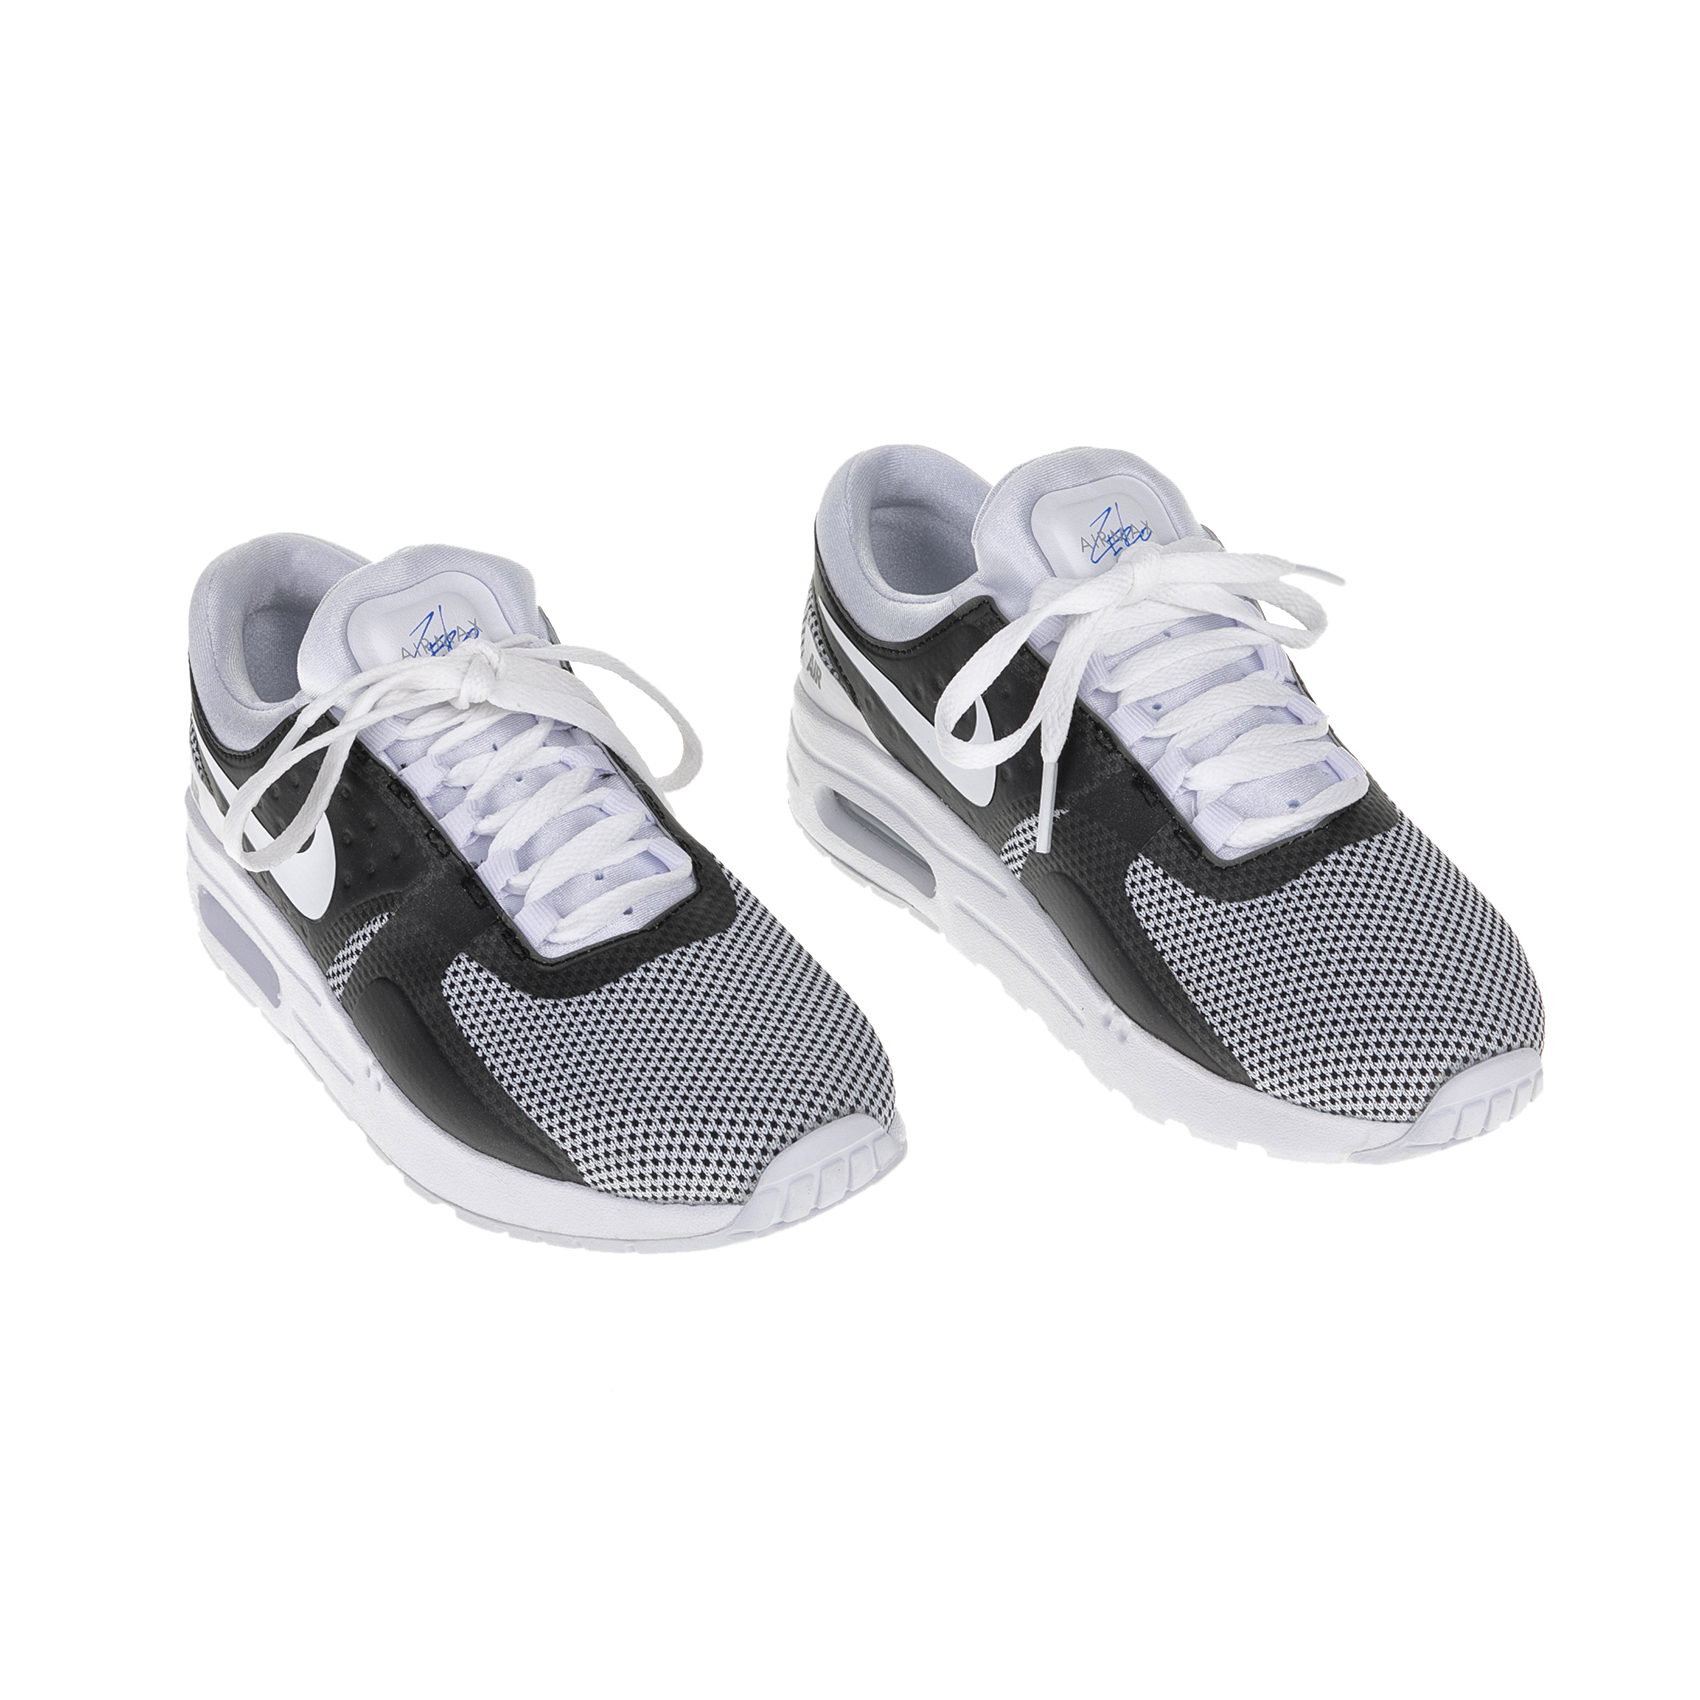 386d9d8859f NIKE - Παιδικά αθλητικά παπούτσια Nike AIR MAX ZERO ESSENTIAL PS άσπρα -  μαύρα, Παιδικά αθλητικά παπούτσια διάφορα, ΠΑΙΔΙ   ΠΑΠΟΥΤΣΙΑ   ΔΙΑΦΟΡΑ